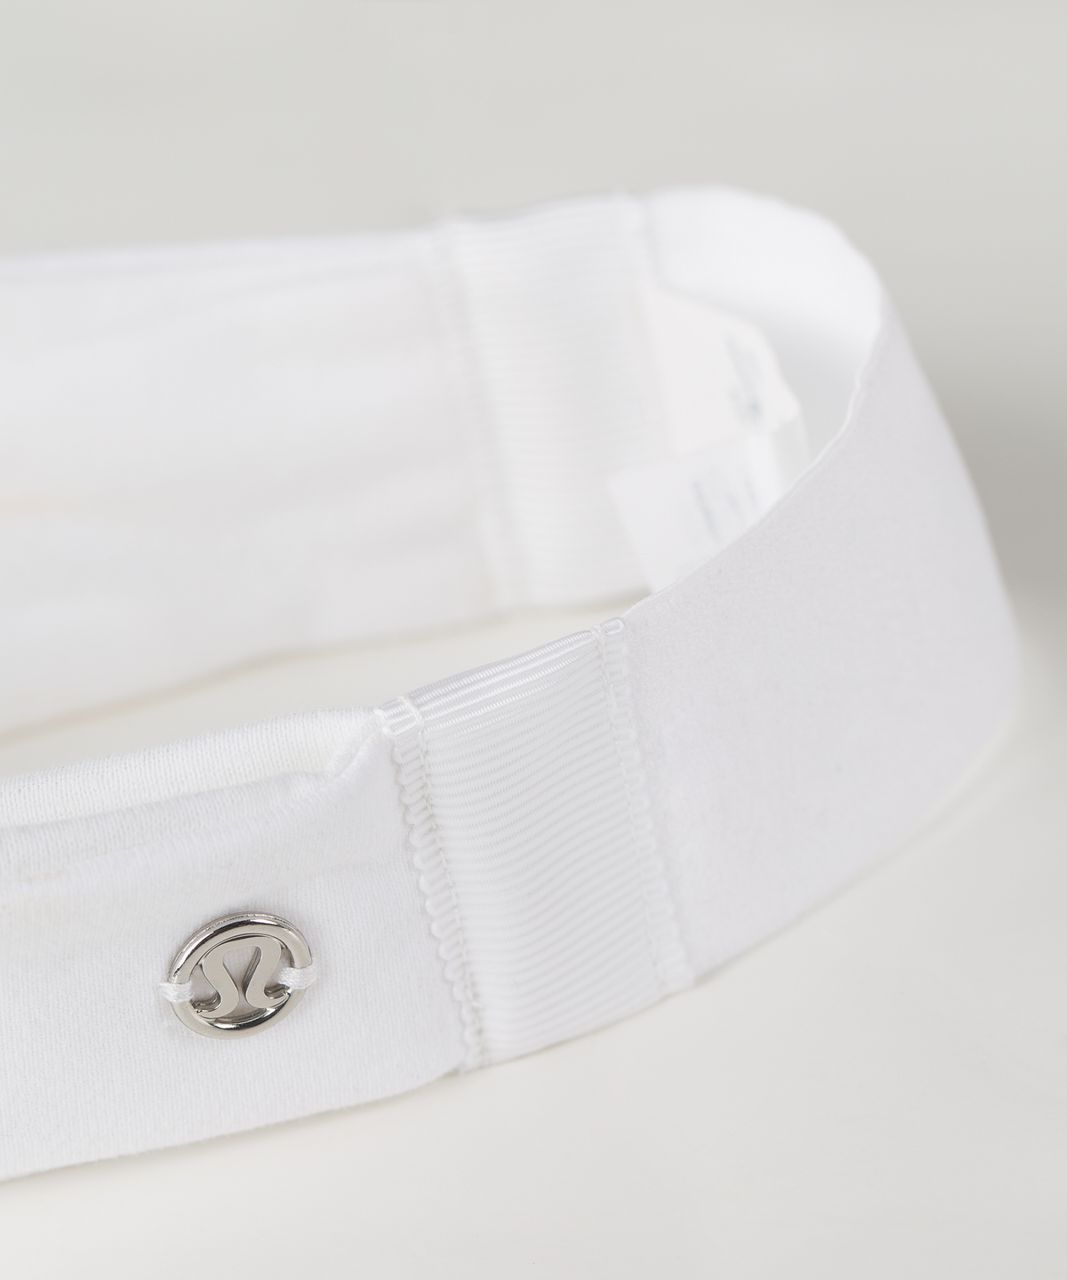 Lululemon Fringe Fighter Headband - White / White / Silver